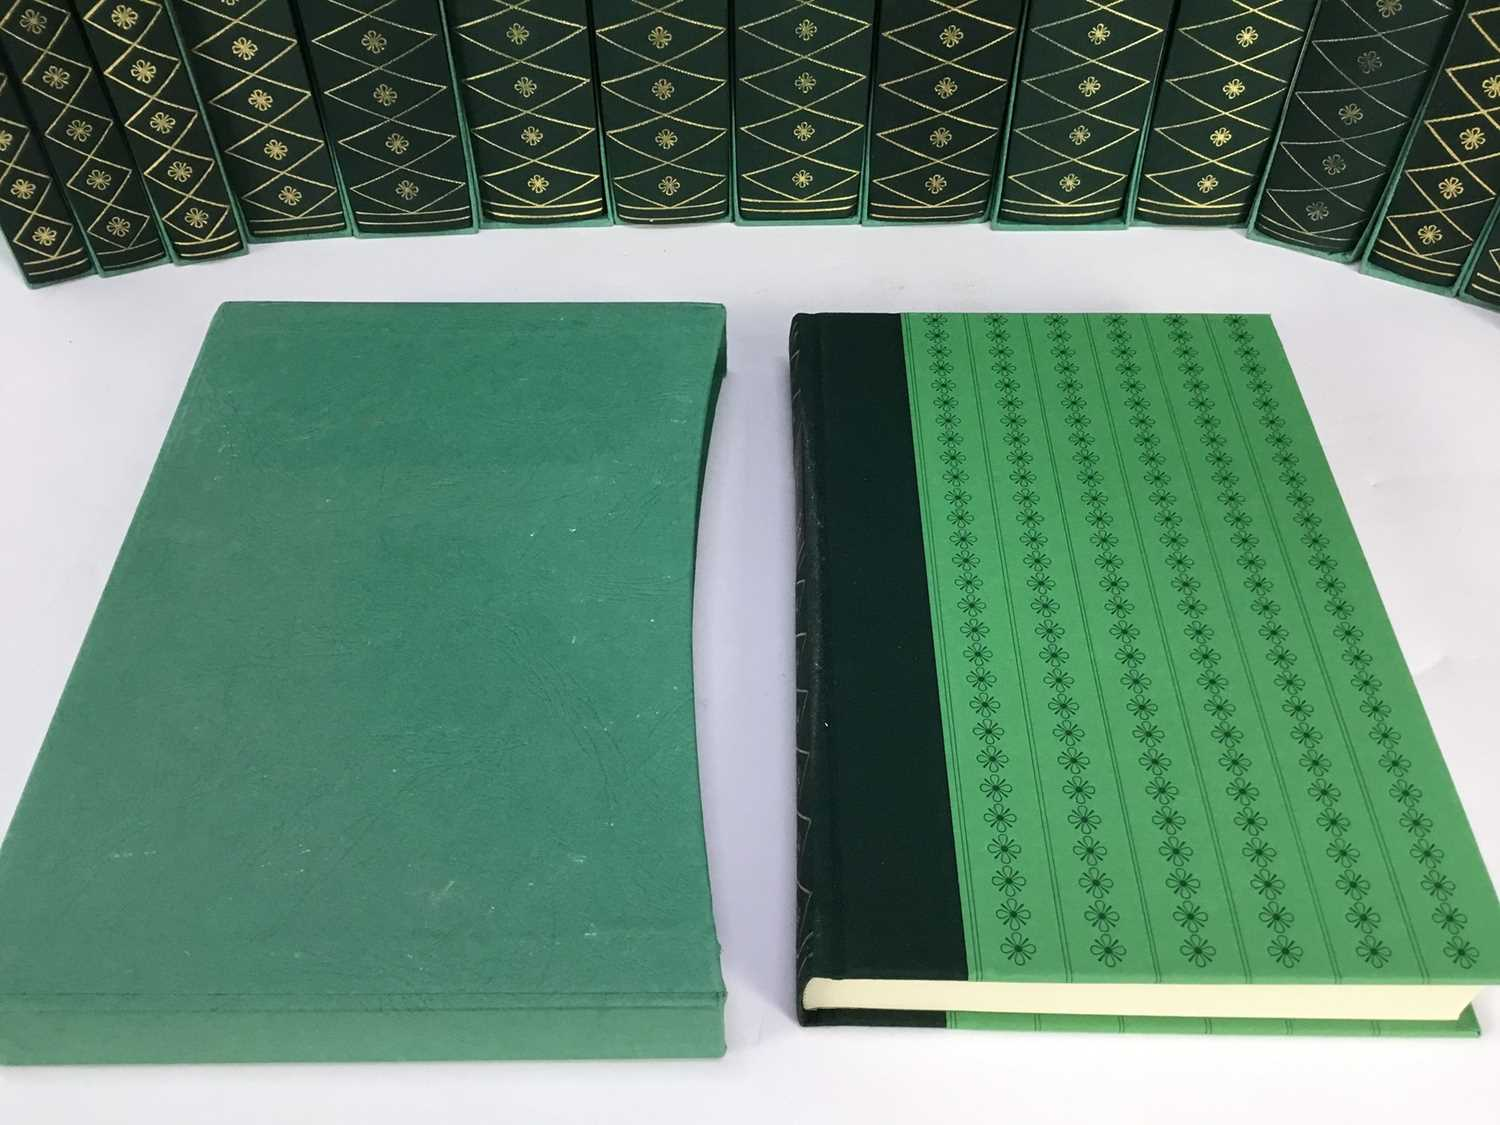 Collection of Charles Dickens books published by The Folio Society, in green slip cases, together wi - Image 2 of 11